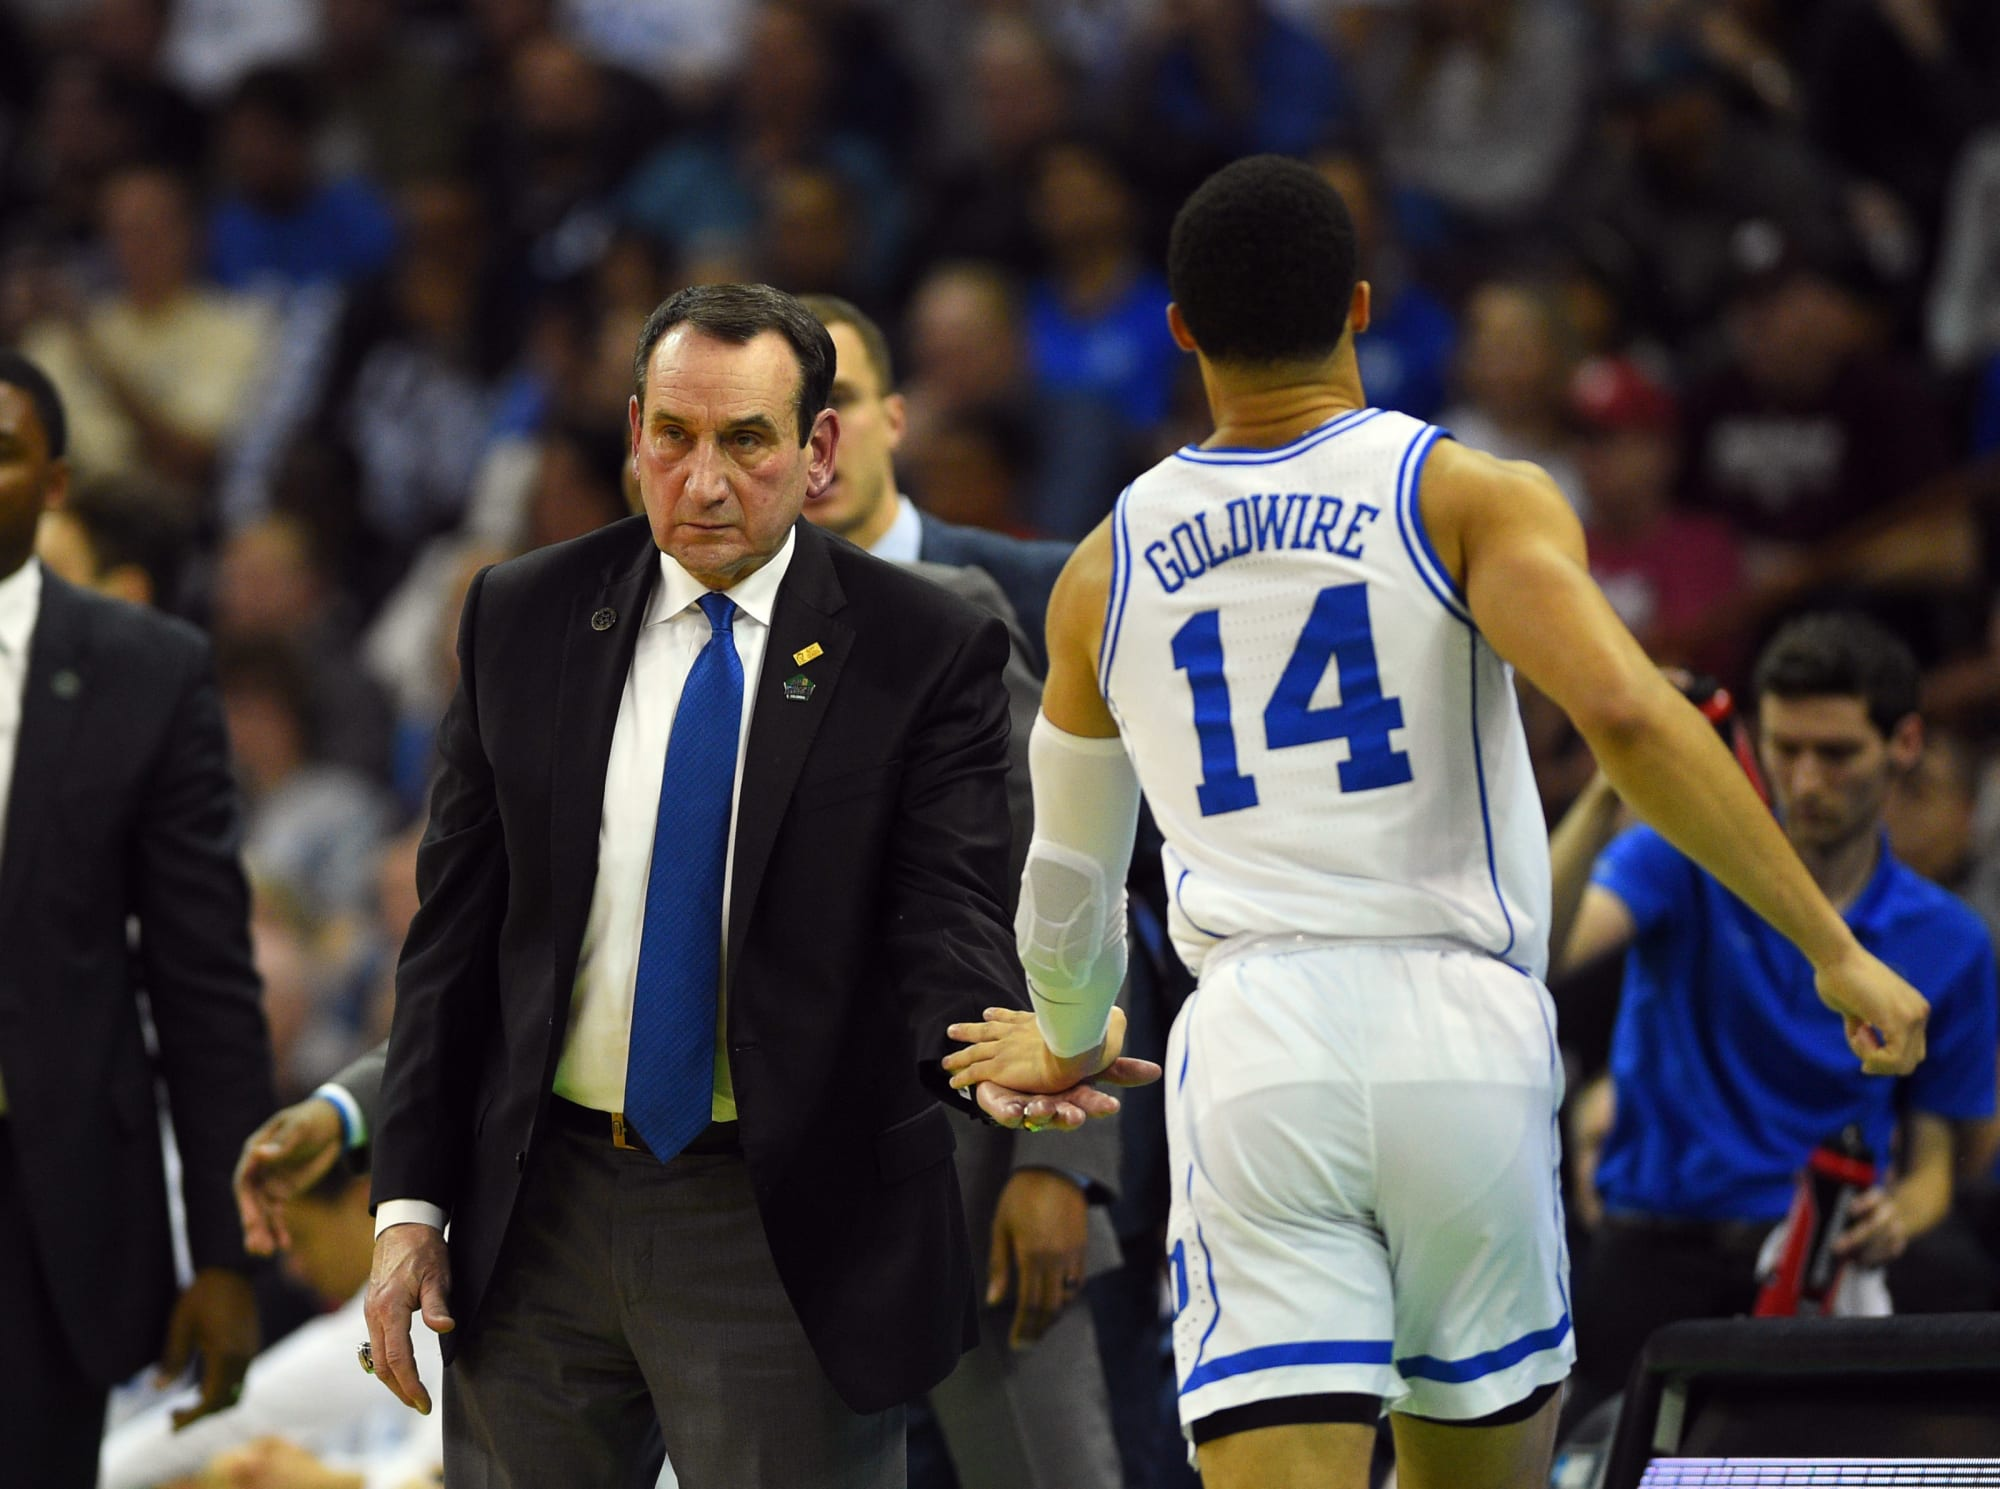 Duke basketball: The firm decision Coach K must make to win national title